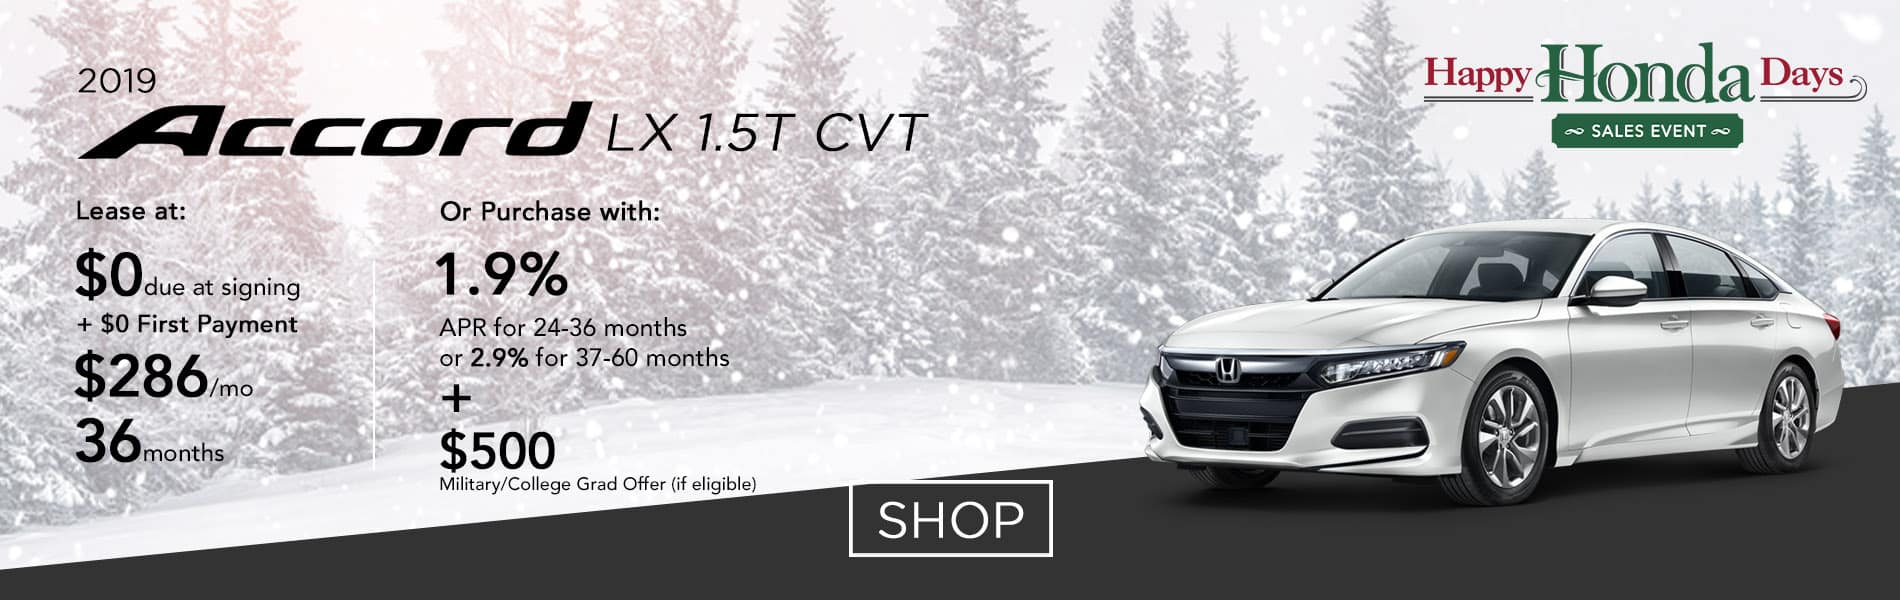 Lease a 2019 Accord LX 1.5T CVT for $286 per month or purchase with 1.9% APR up to 36 months